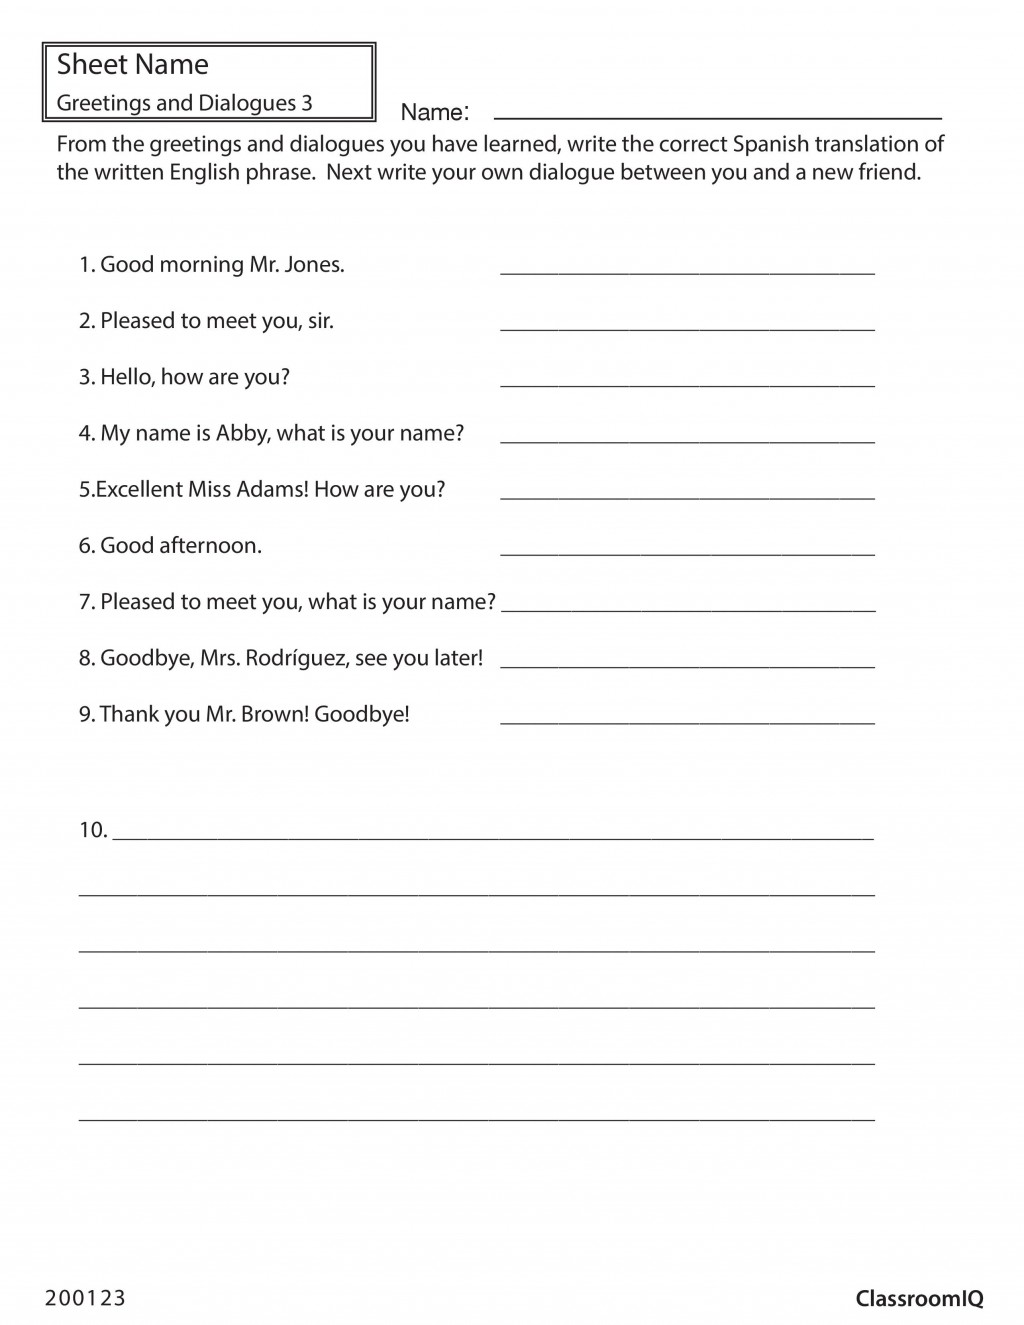 005 Translate My Essay Into Spanish Remarkable Large